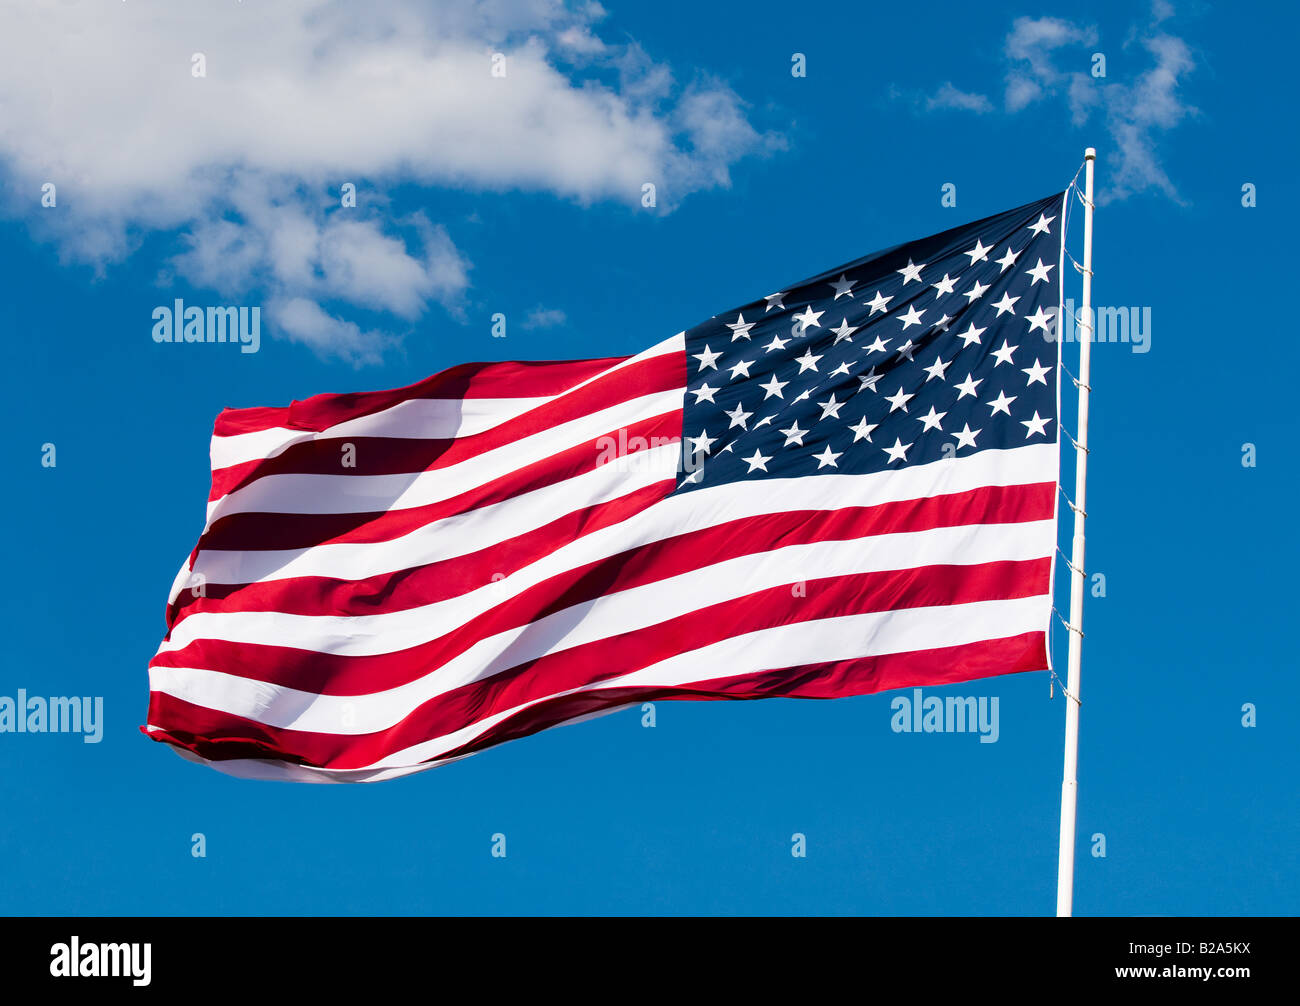 american flag over blue sky background - Stock Image